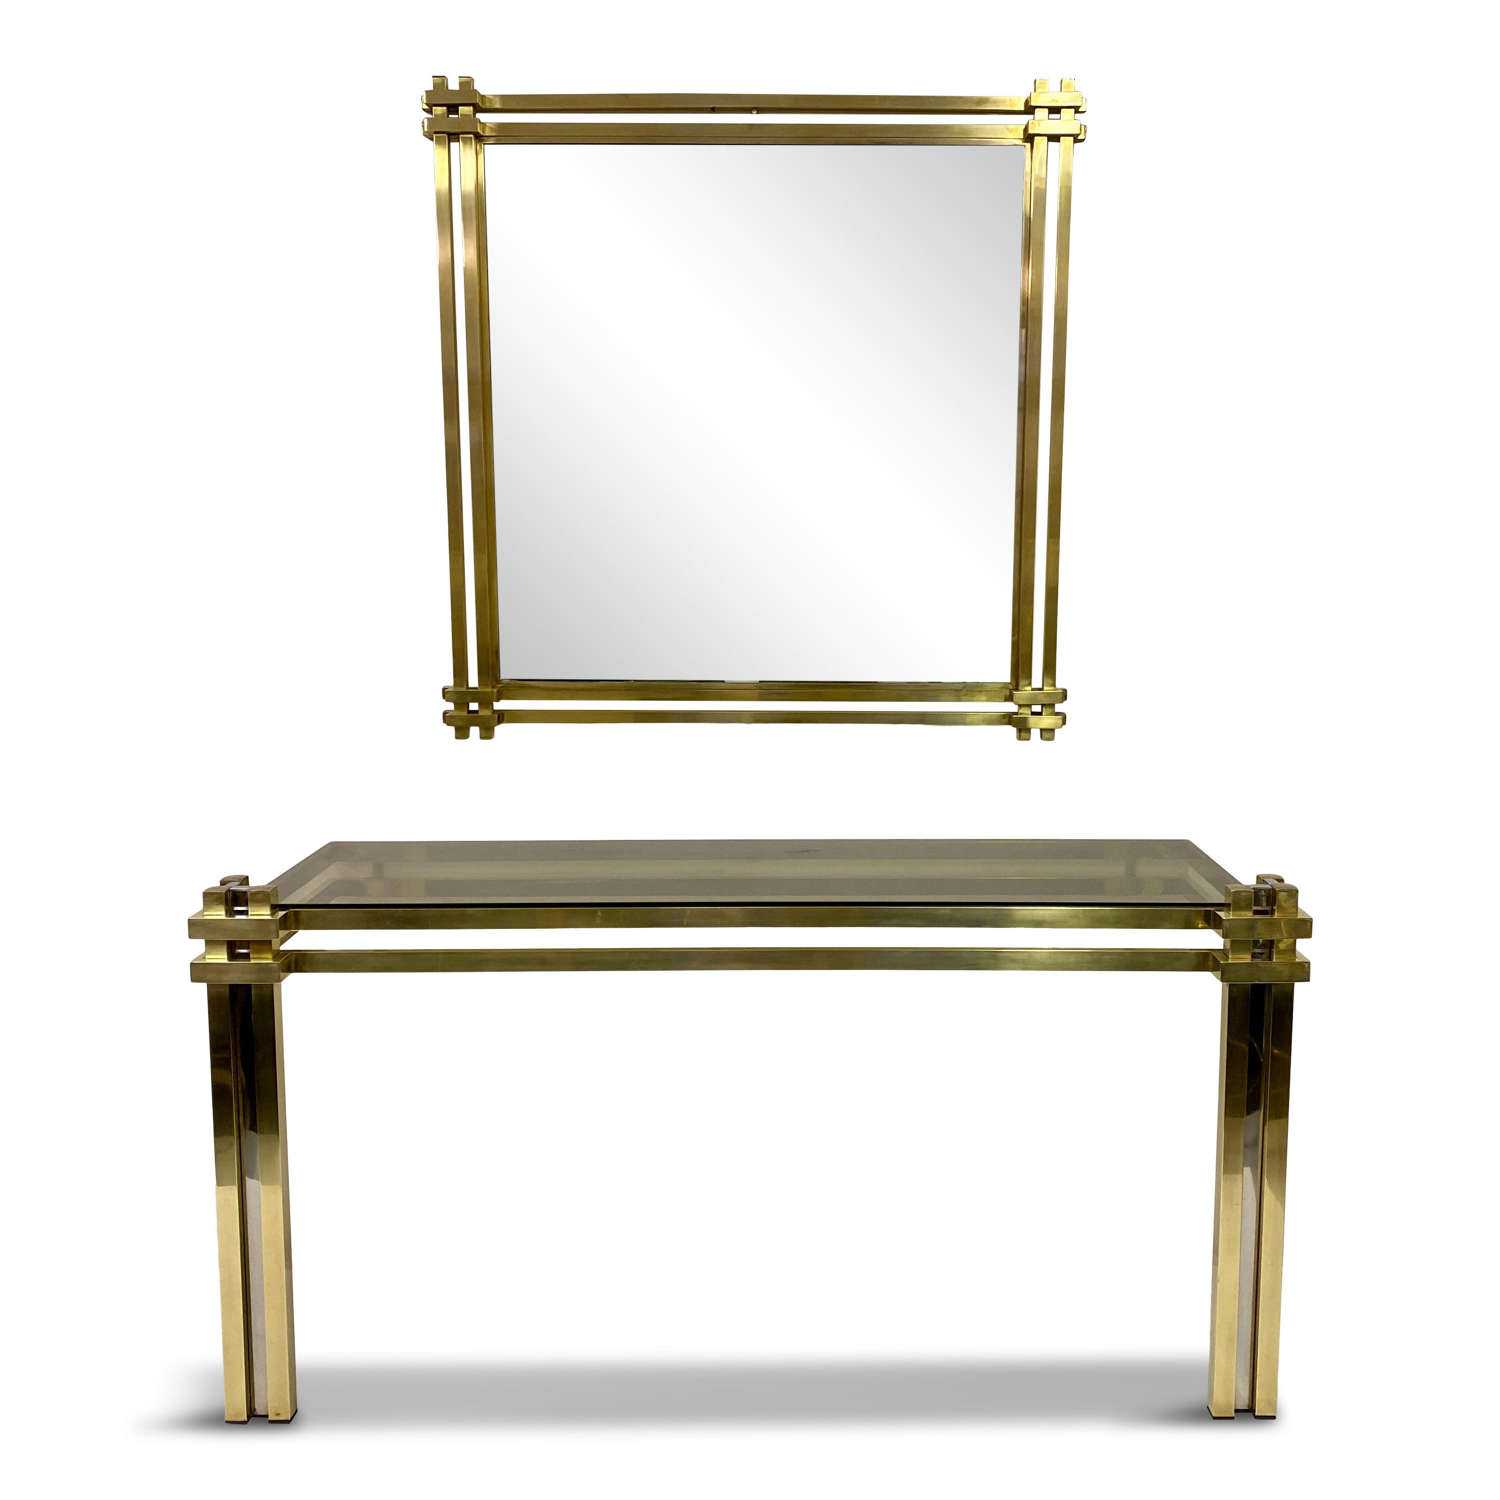 1970s Brass Console Table and Mirror by Romeo Rega